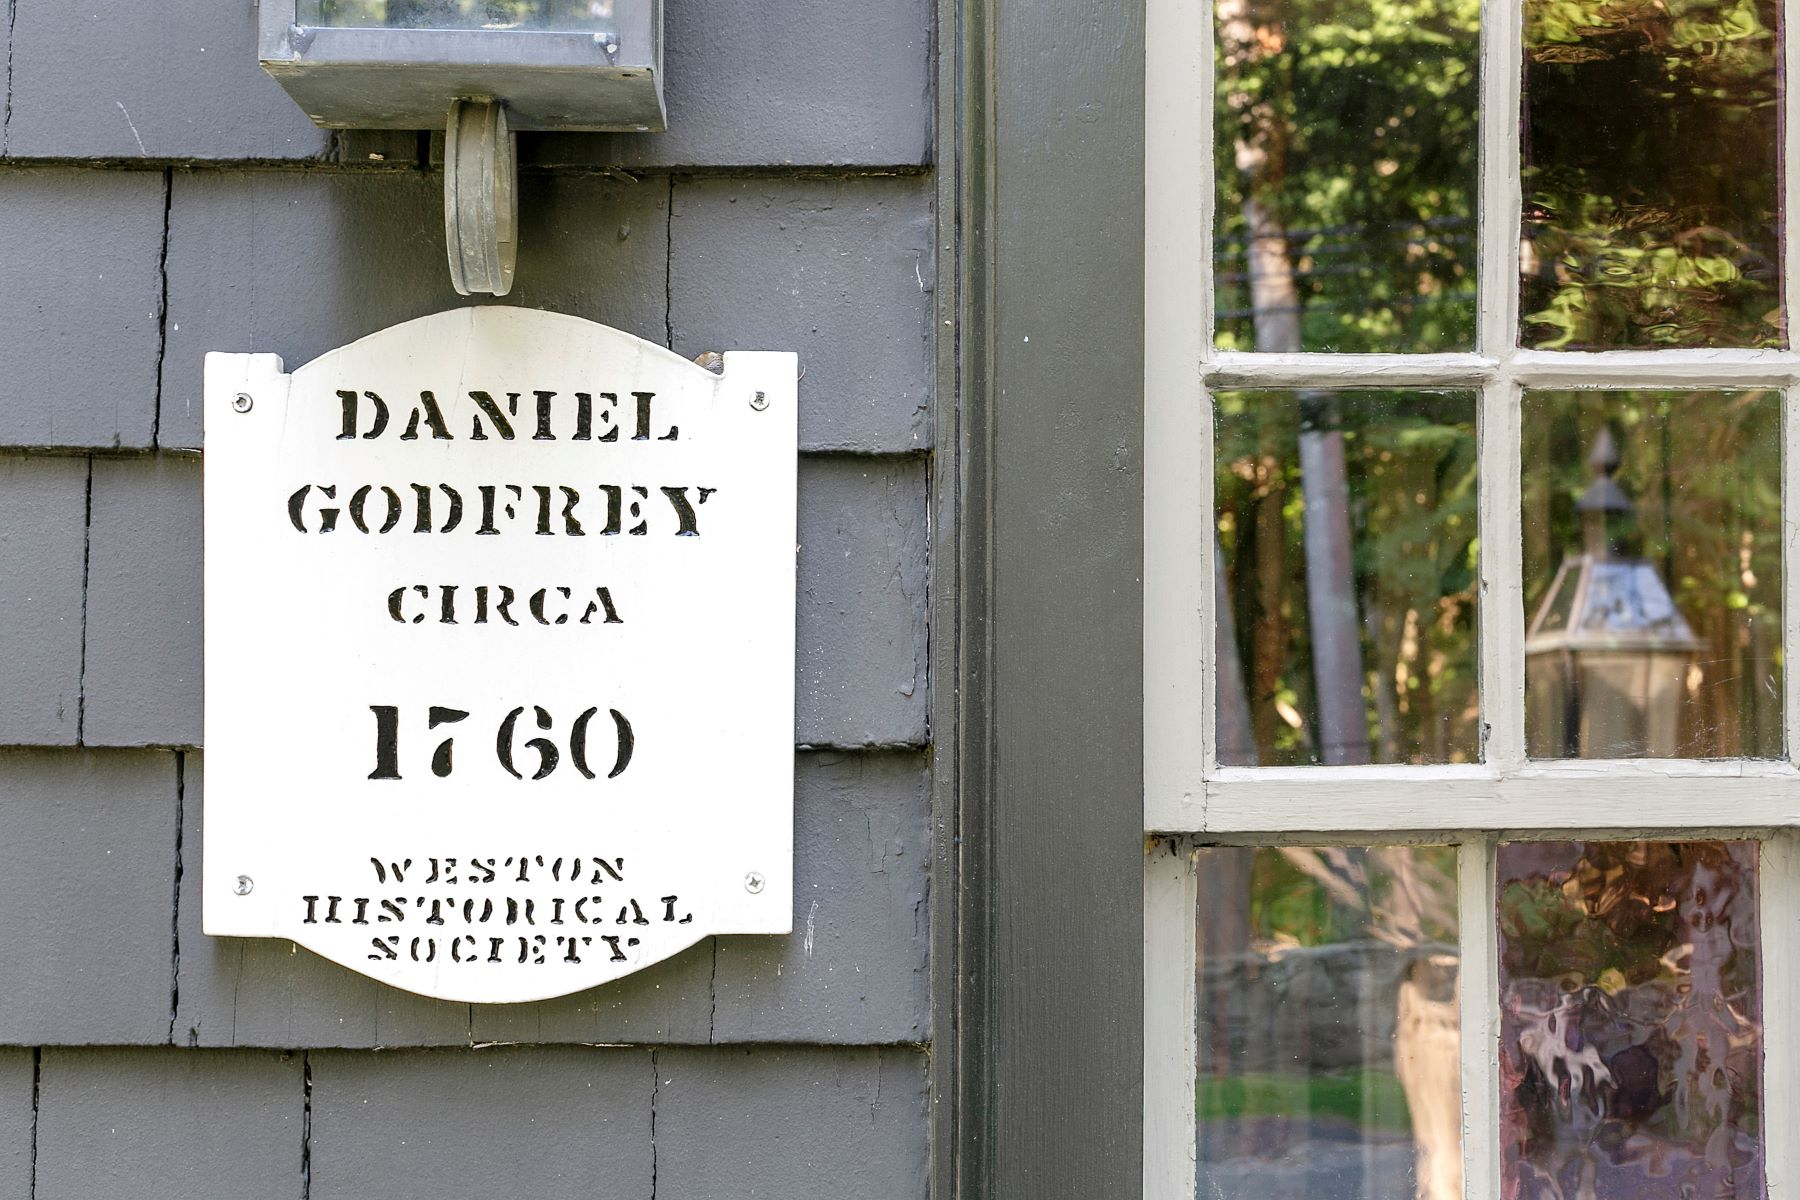 Maison unifamiliale pour l Vente à The Captain Daniel Godfrey House (c. 1760) 4 Norfield Road Weston, Connecticut 06883 États-Unis